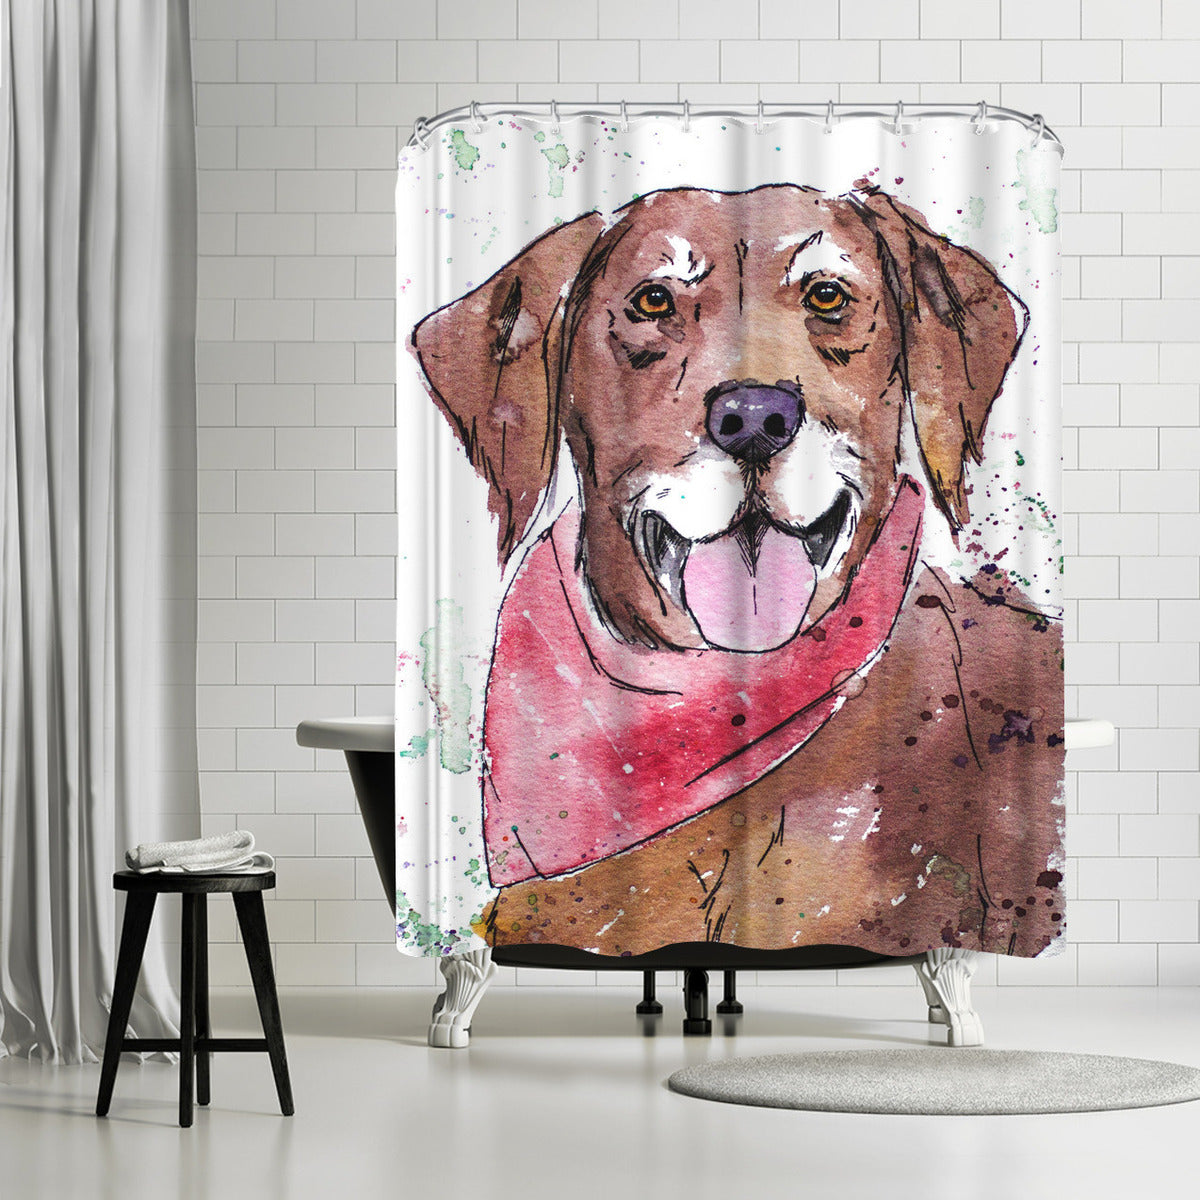 Rocco by Allison Gray Shower Curtain -  - Americanflat